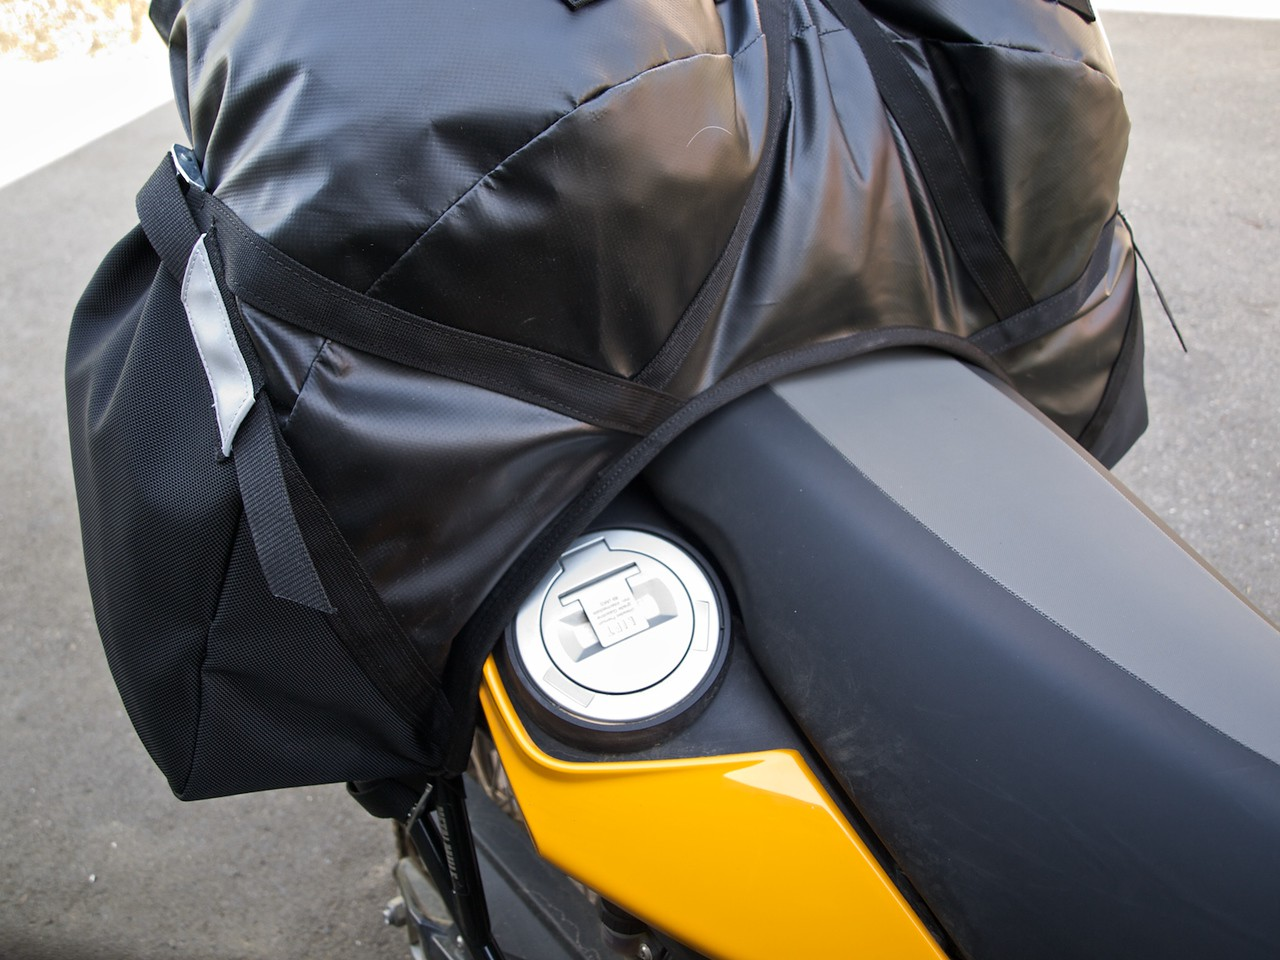 Closer view of the gas cap access. The right strap loosens in about one second. Not an issue.